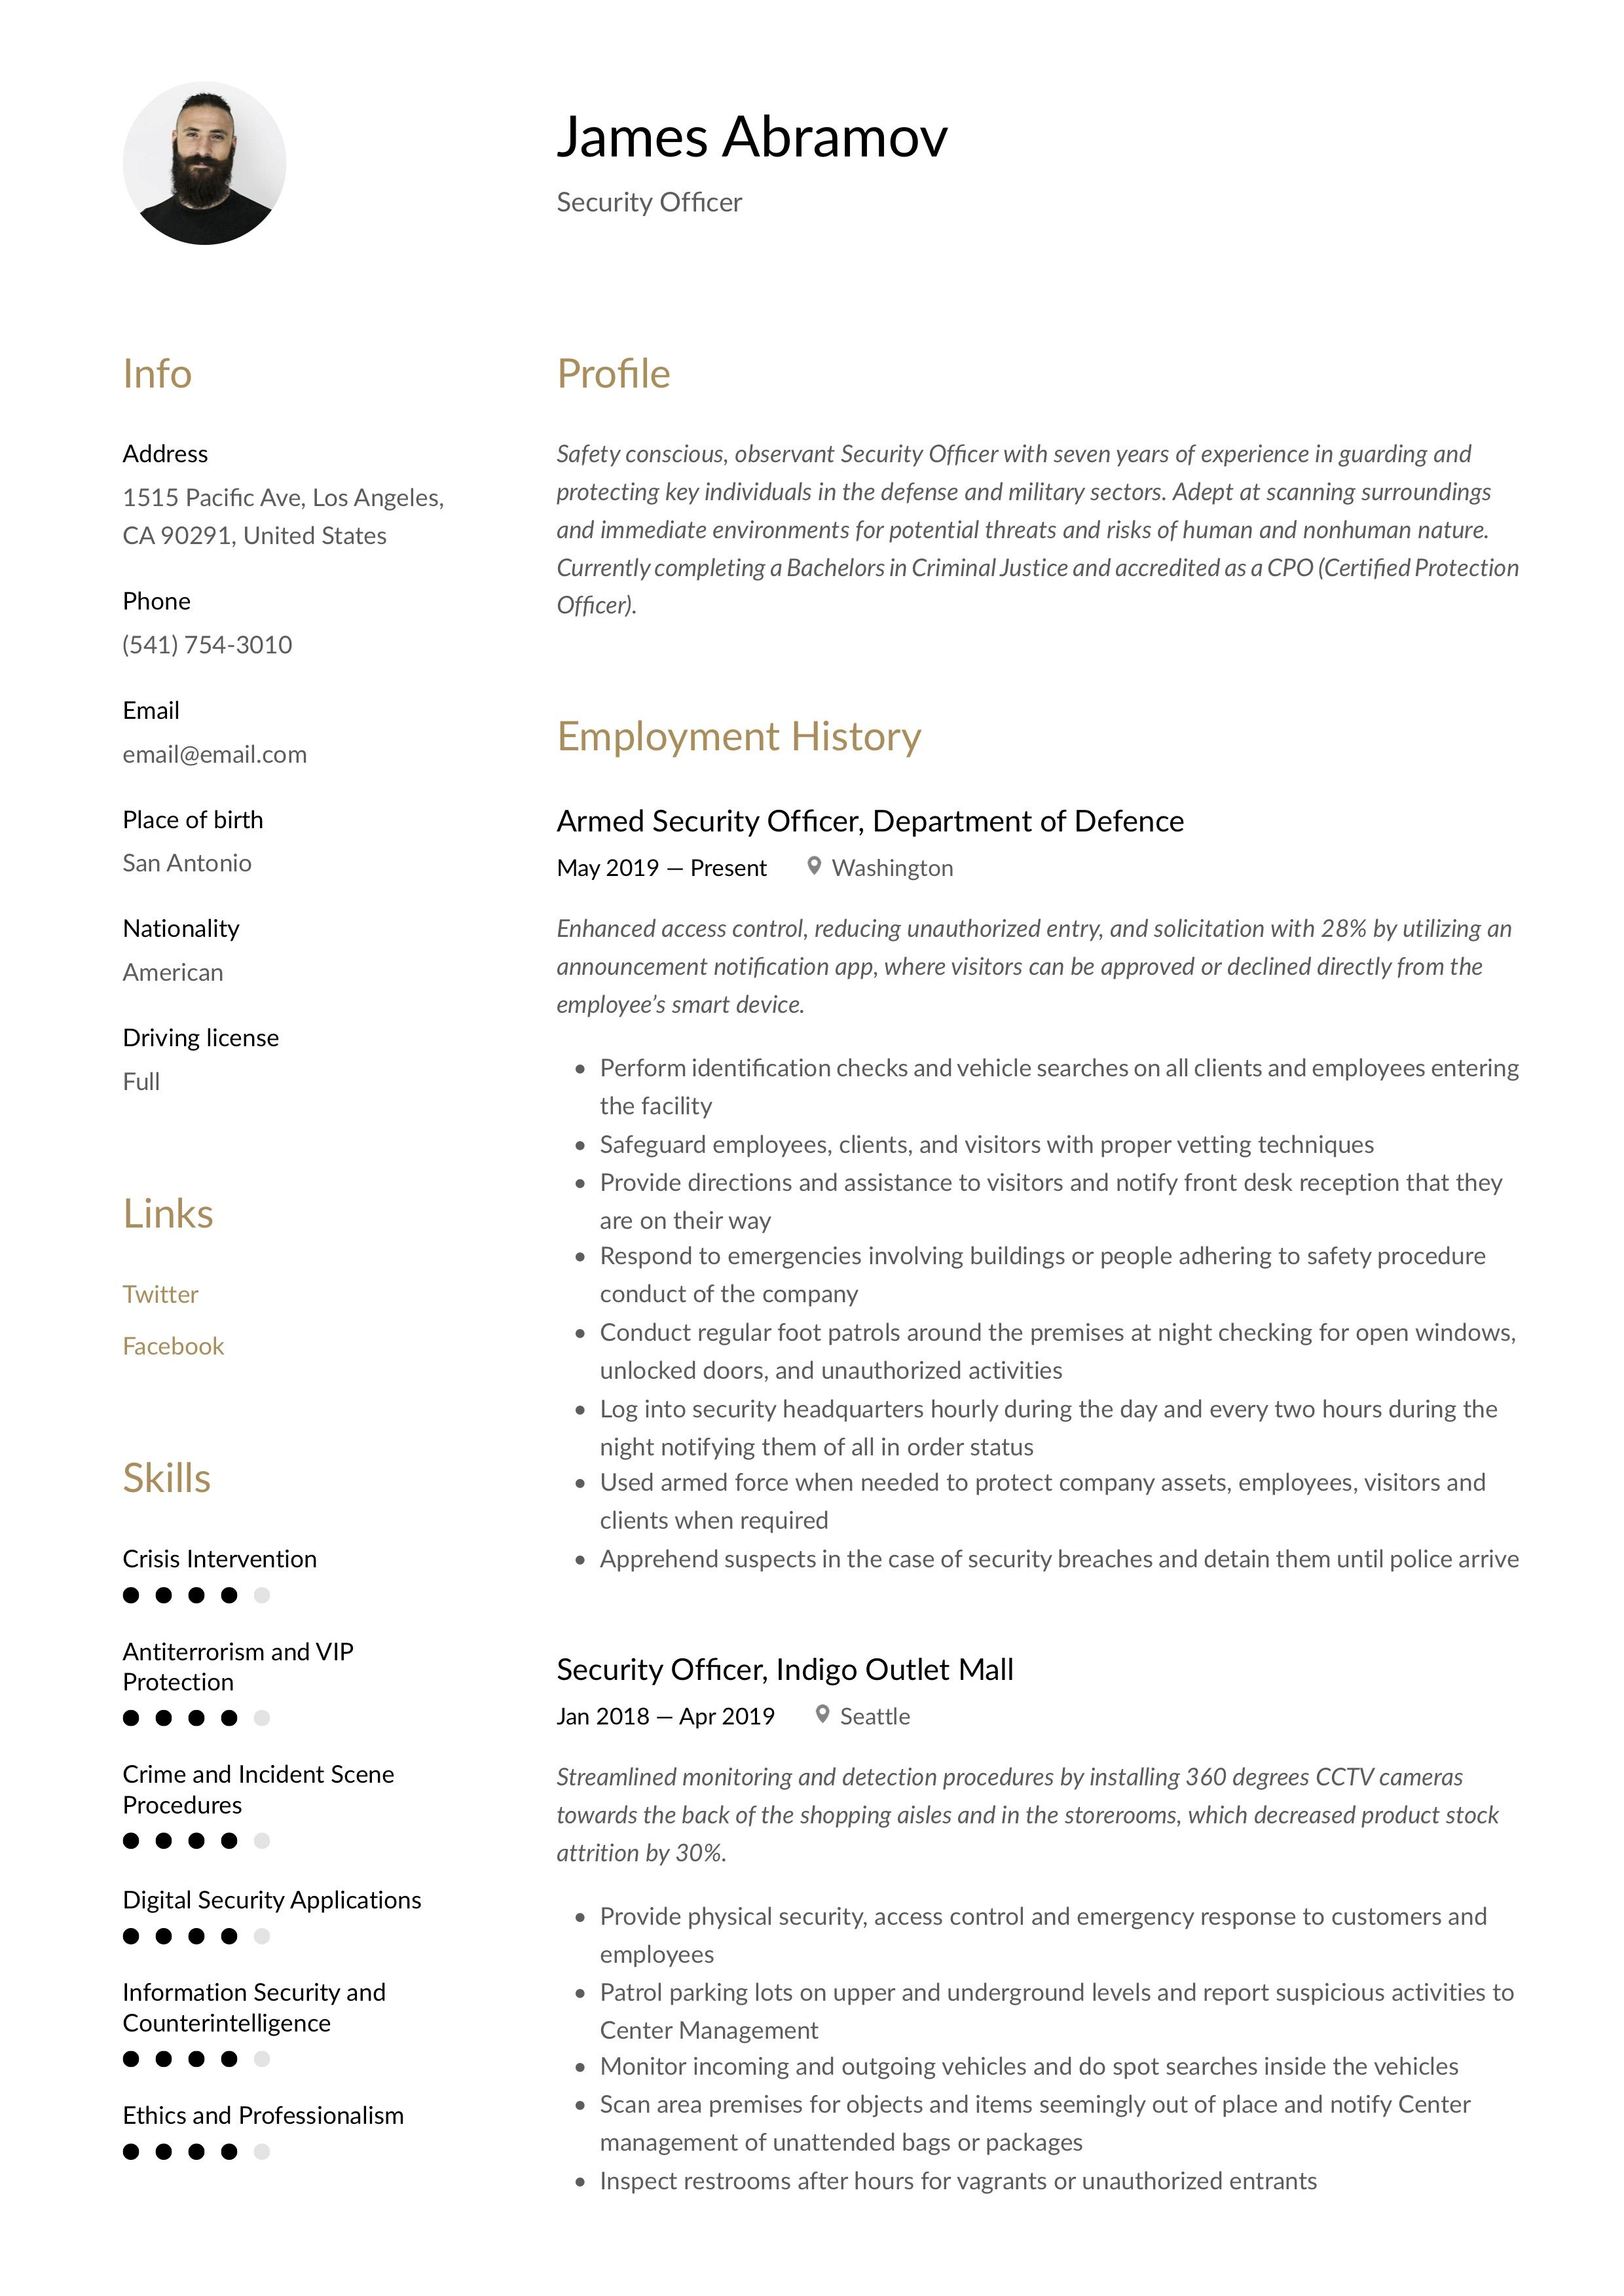 Security Officer Resume & Writing Guide in 2020 Security